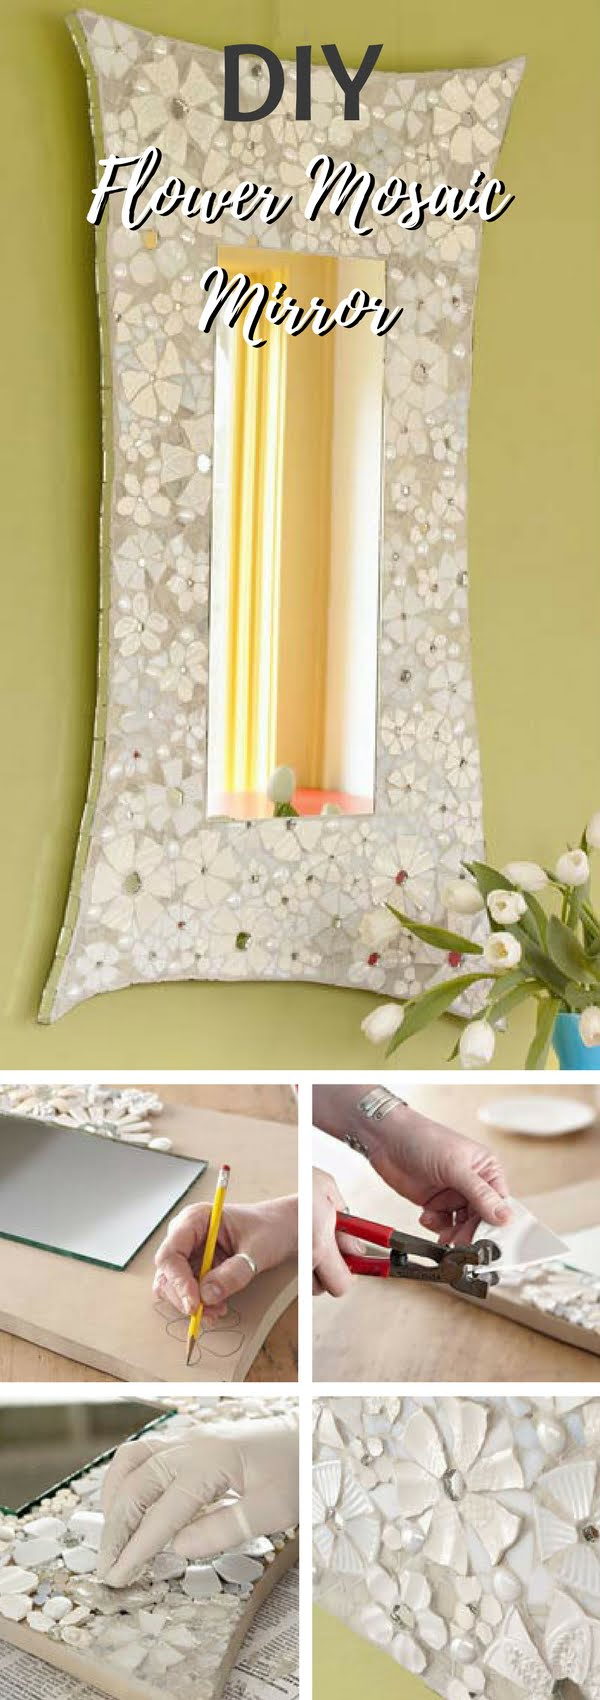 30 Stunning DIY Mosaic Craft Projects for Easy Home Decor - Check out this easy idea on how to make a #DIY flower mosaic mirror frame for #homedecor on a #budget #crafts #project